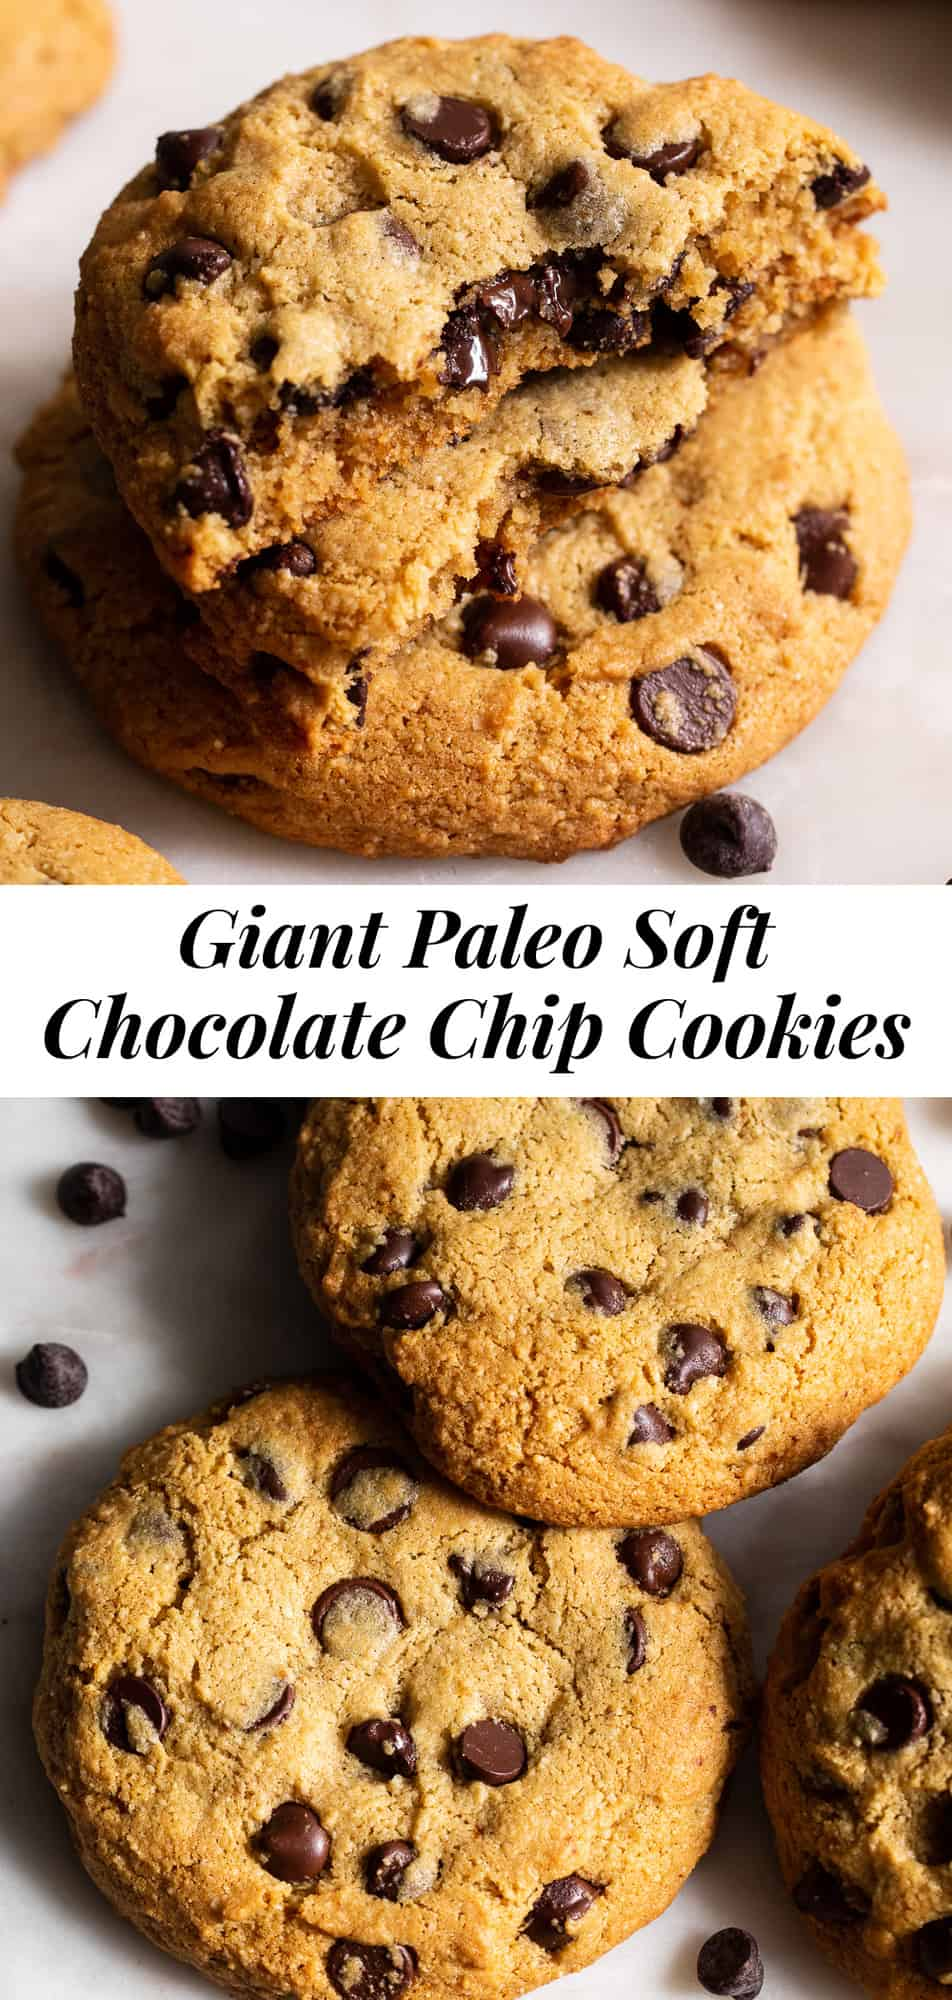 The ultimate giant paleo chocolate chip cookies are here! These cookies are gluten free, dairy free and refined sugar free but you'd never guess! They have a soft slightly chewy texture with loads of gooey chocolate chips and are great served warm or at room temperature.#paleo #cleaneating #cookies #paleobaking #glutenfreebaking